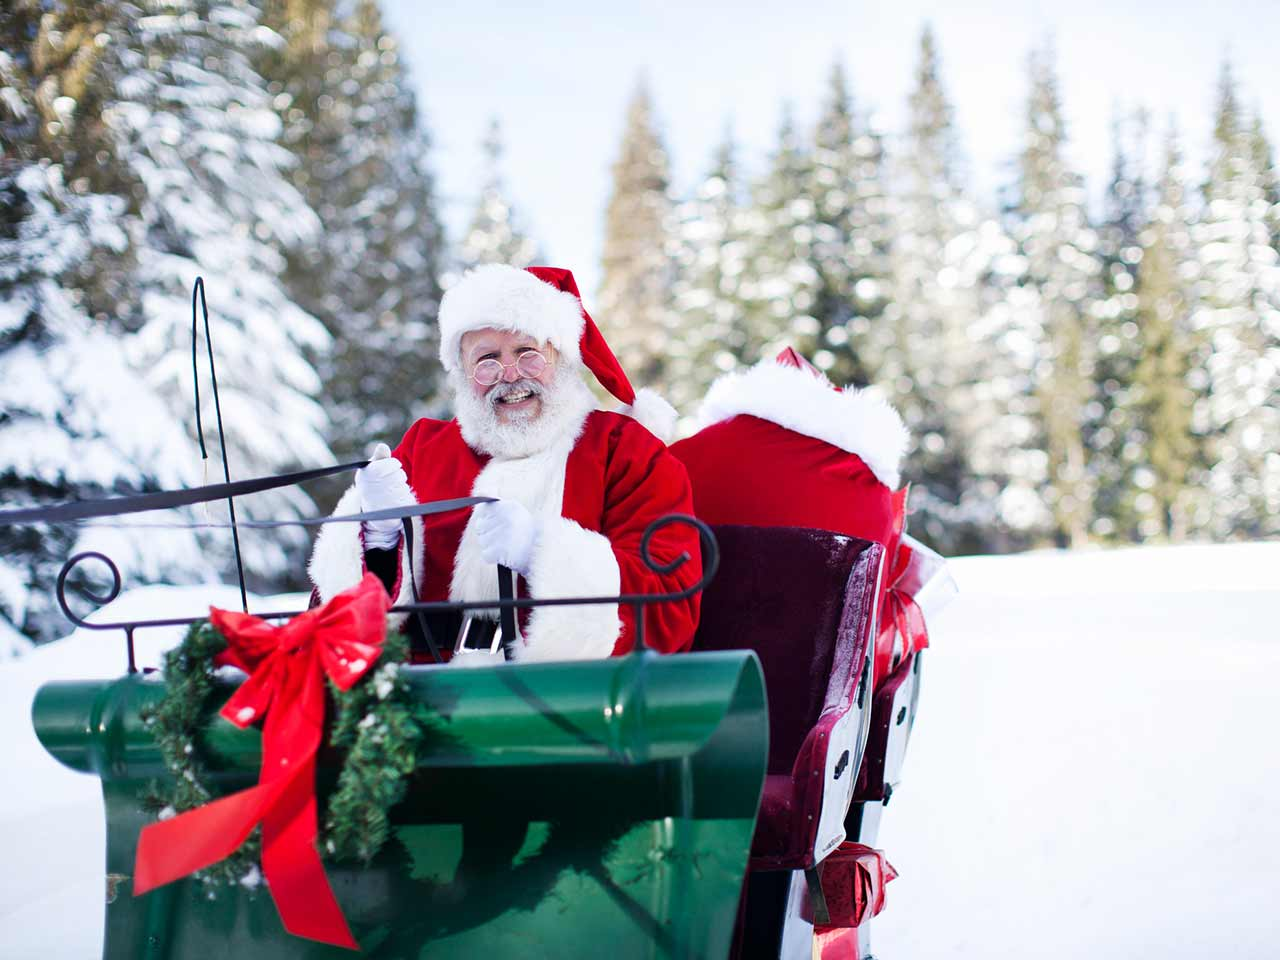 Santa on his sleigh | quavondo/E+/Getty Images